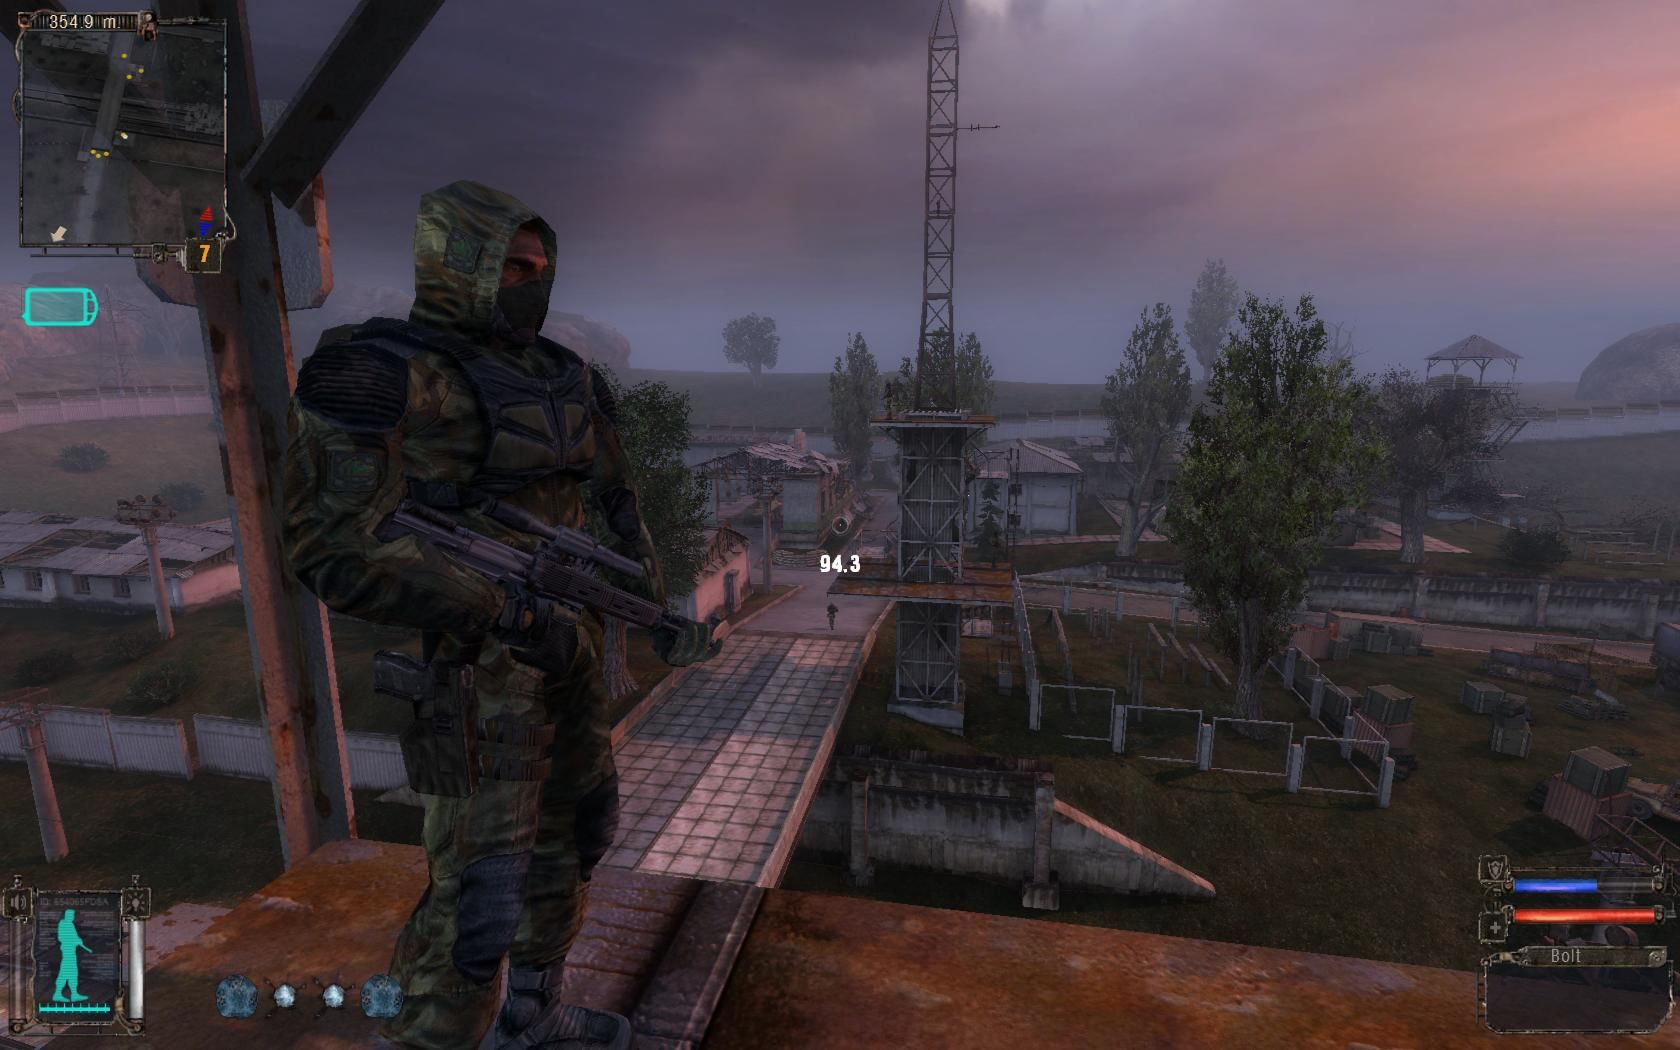 S.T.A.L.K.E.R.: Shadow of Chernobyl Windows Freedom faction HQ